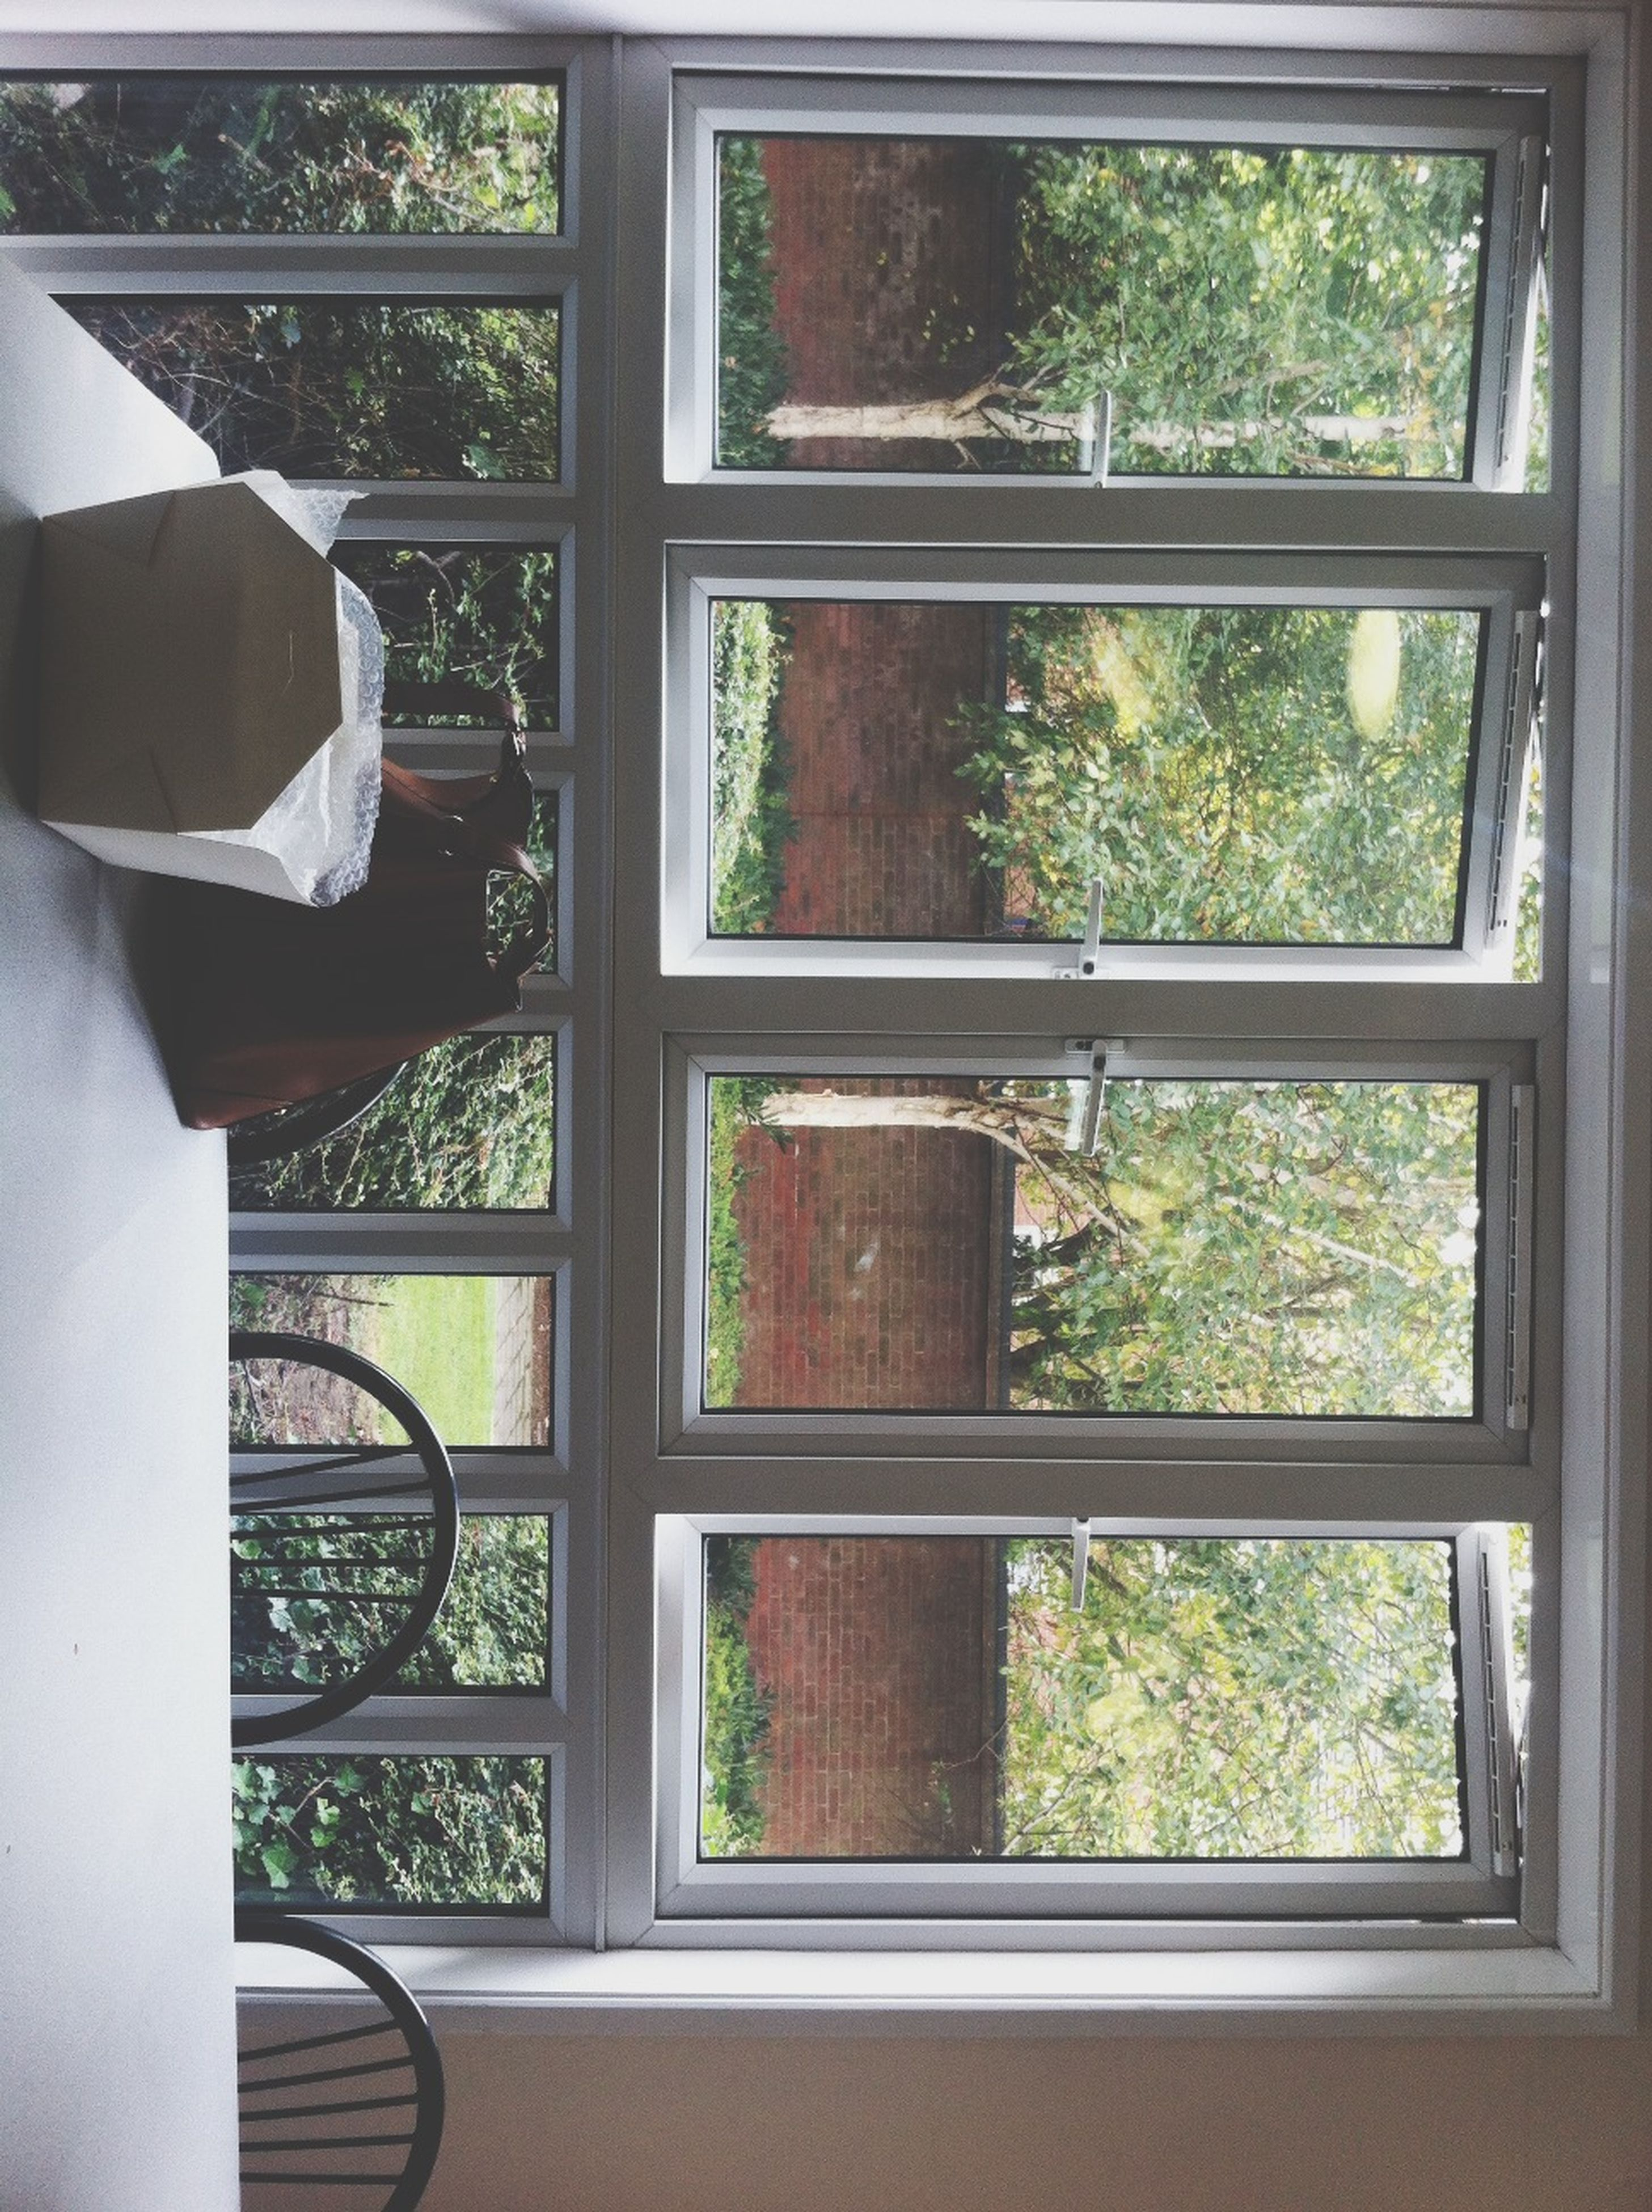 window, indoors, glass - material, transparent, tree, house, home interior, day, sunlight, built structure, open, architecture, plant, closed, growth, glass, curtain, looking through window, window sill, no people